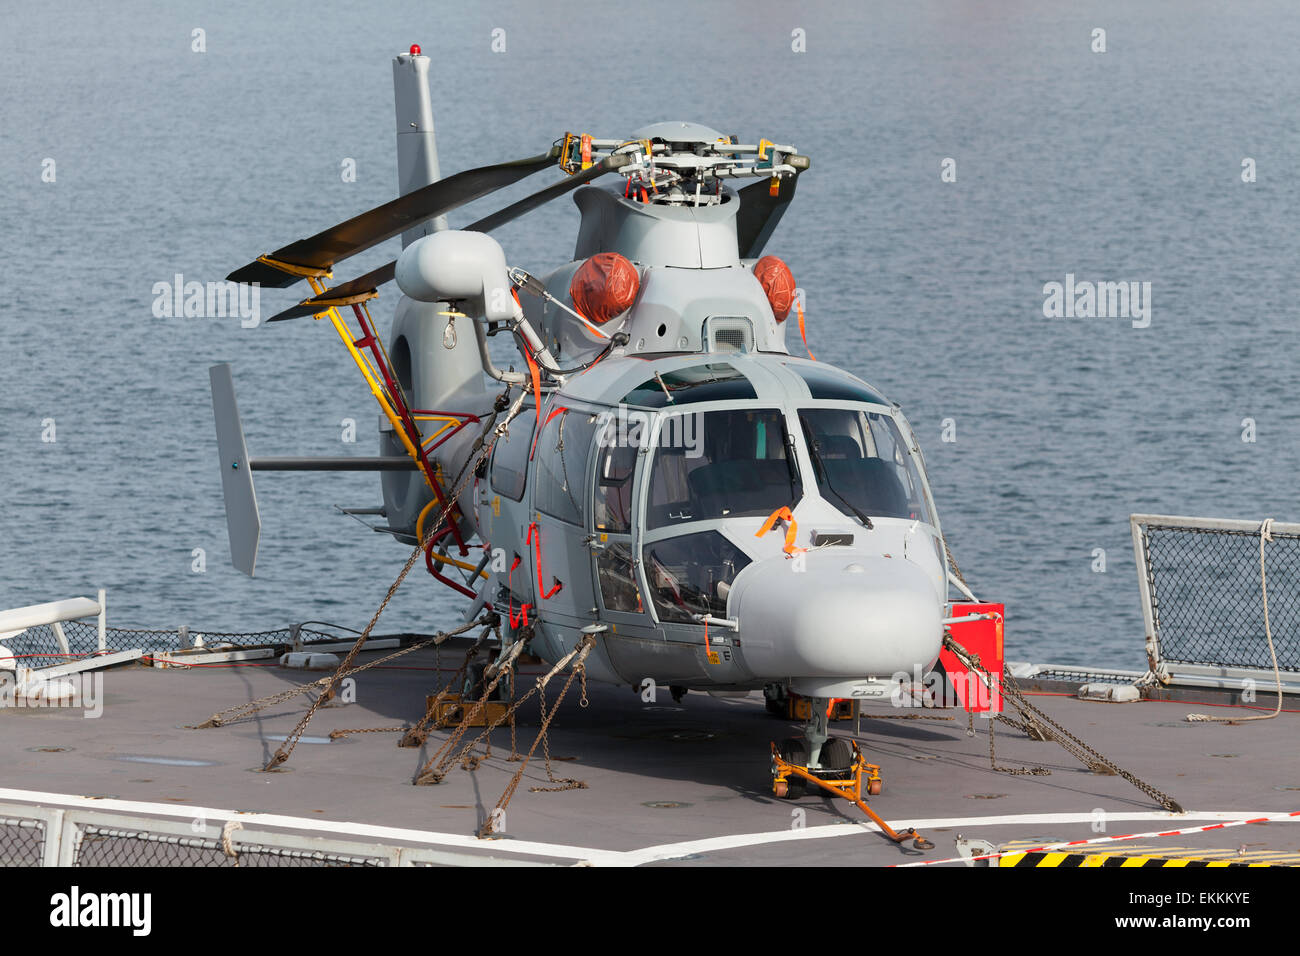 navy rescue helicopter - Stock Image